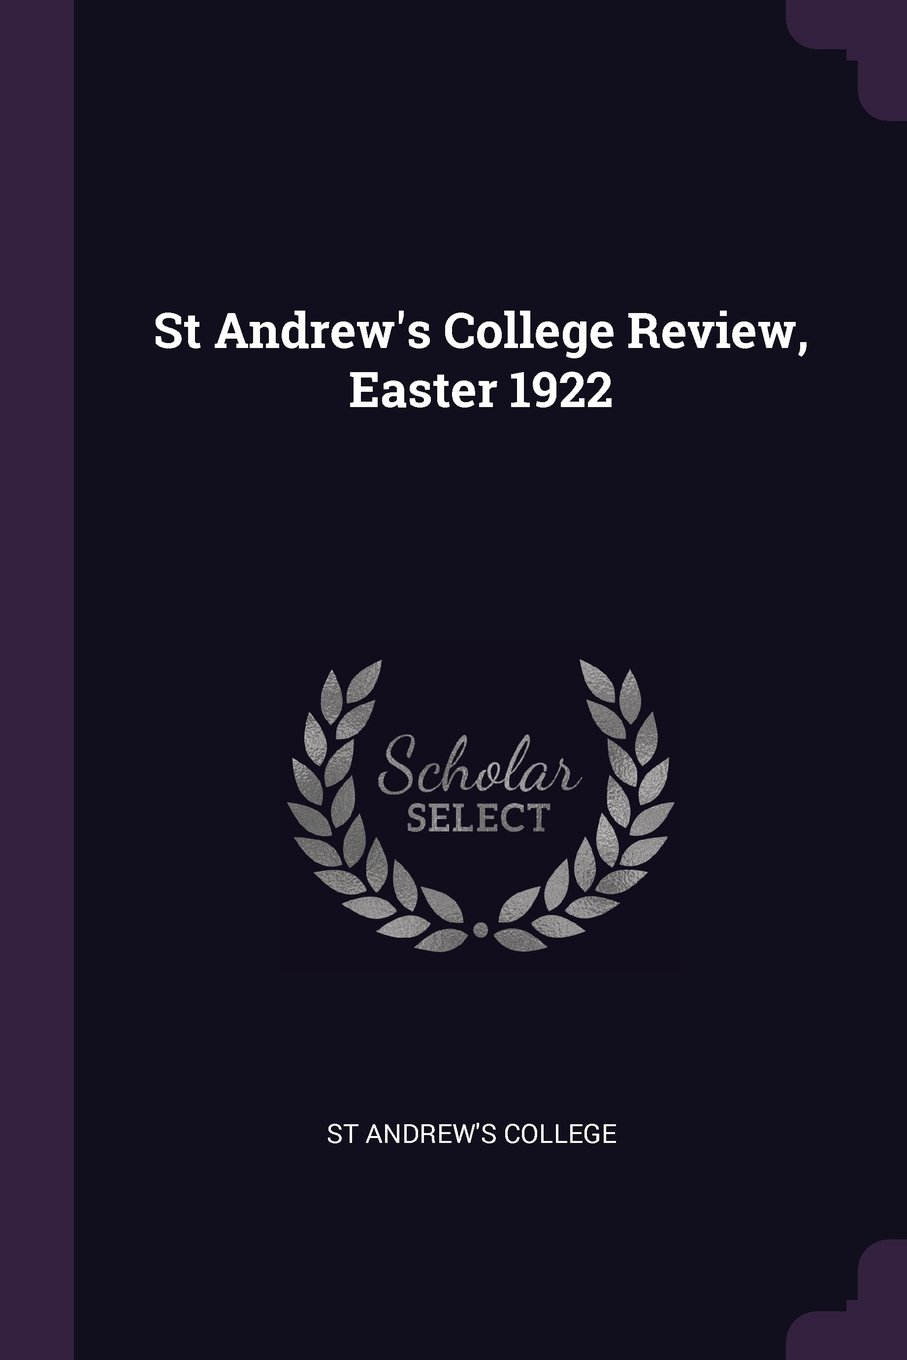 St Andrew's College Review, Easter 1922 pdf